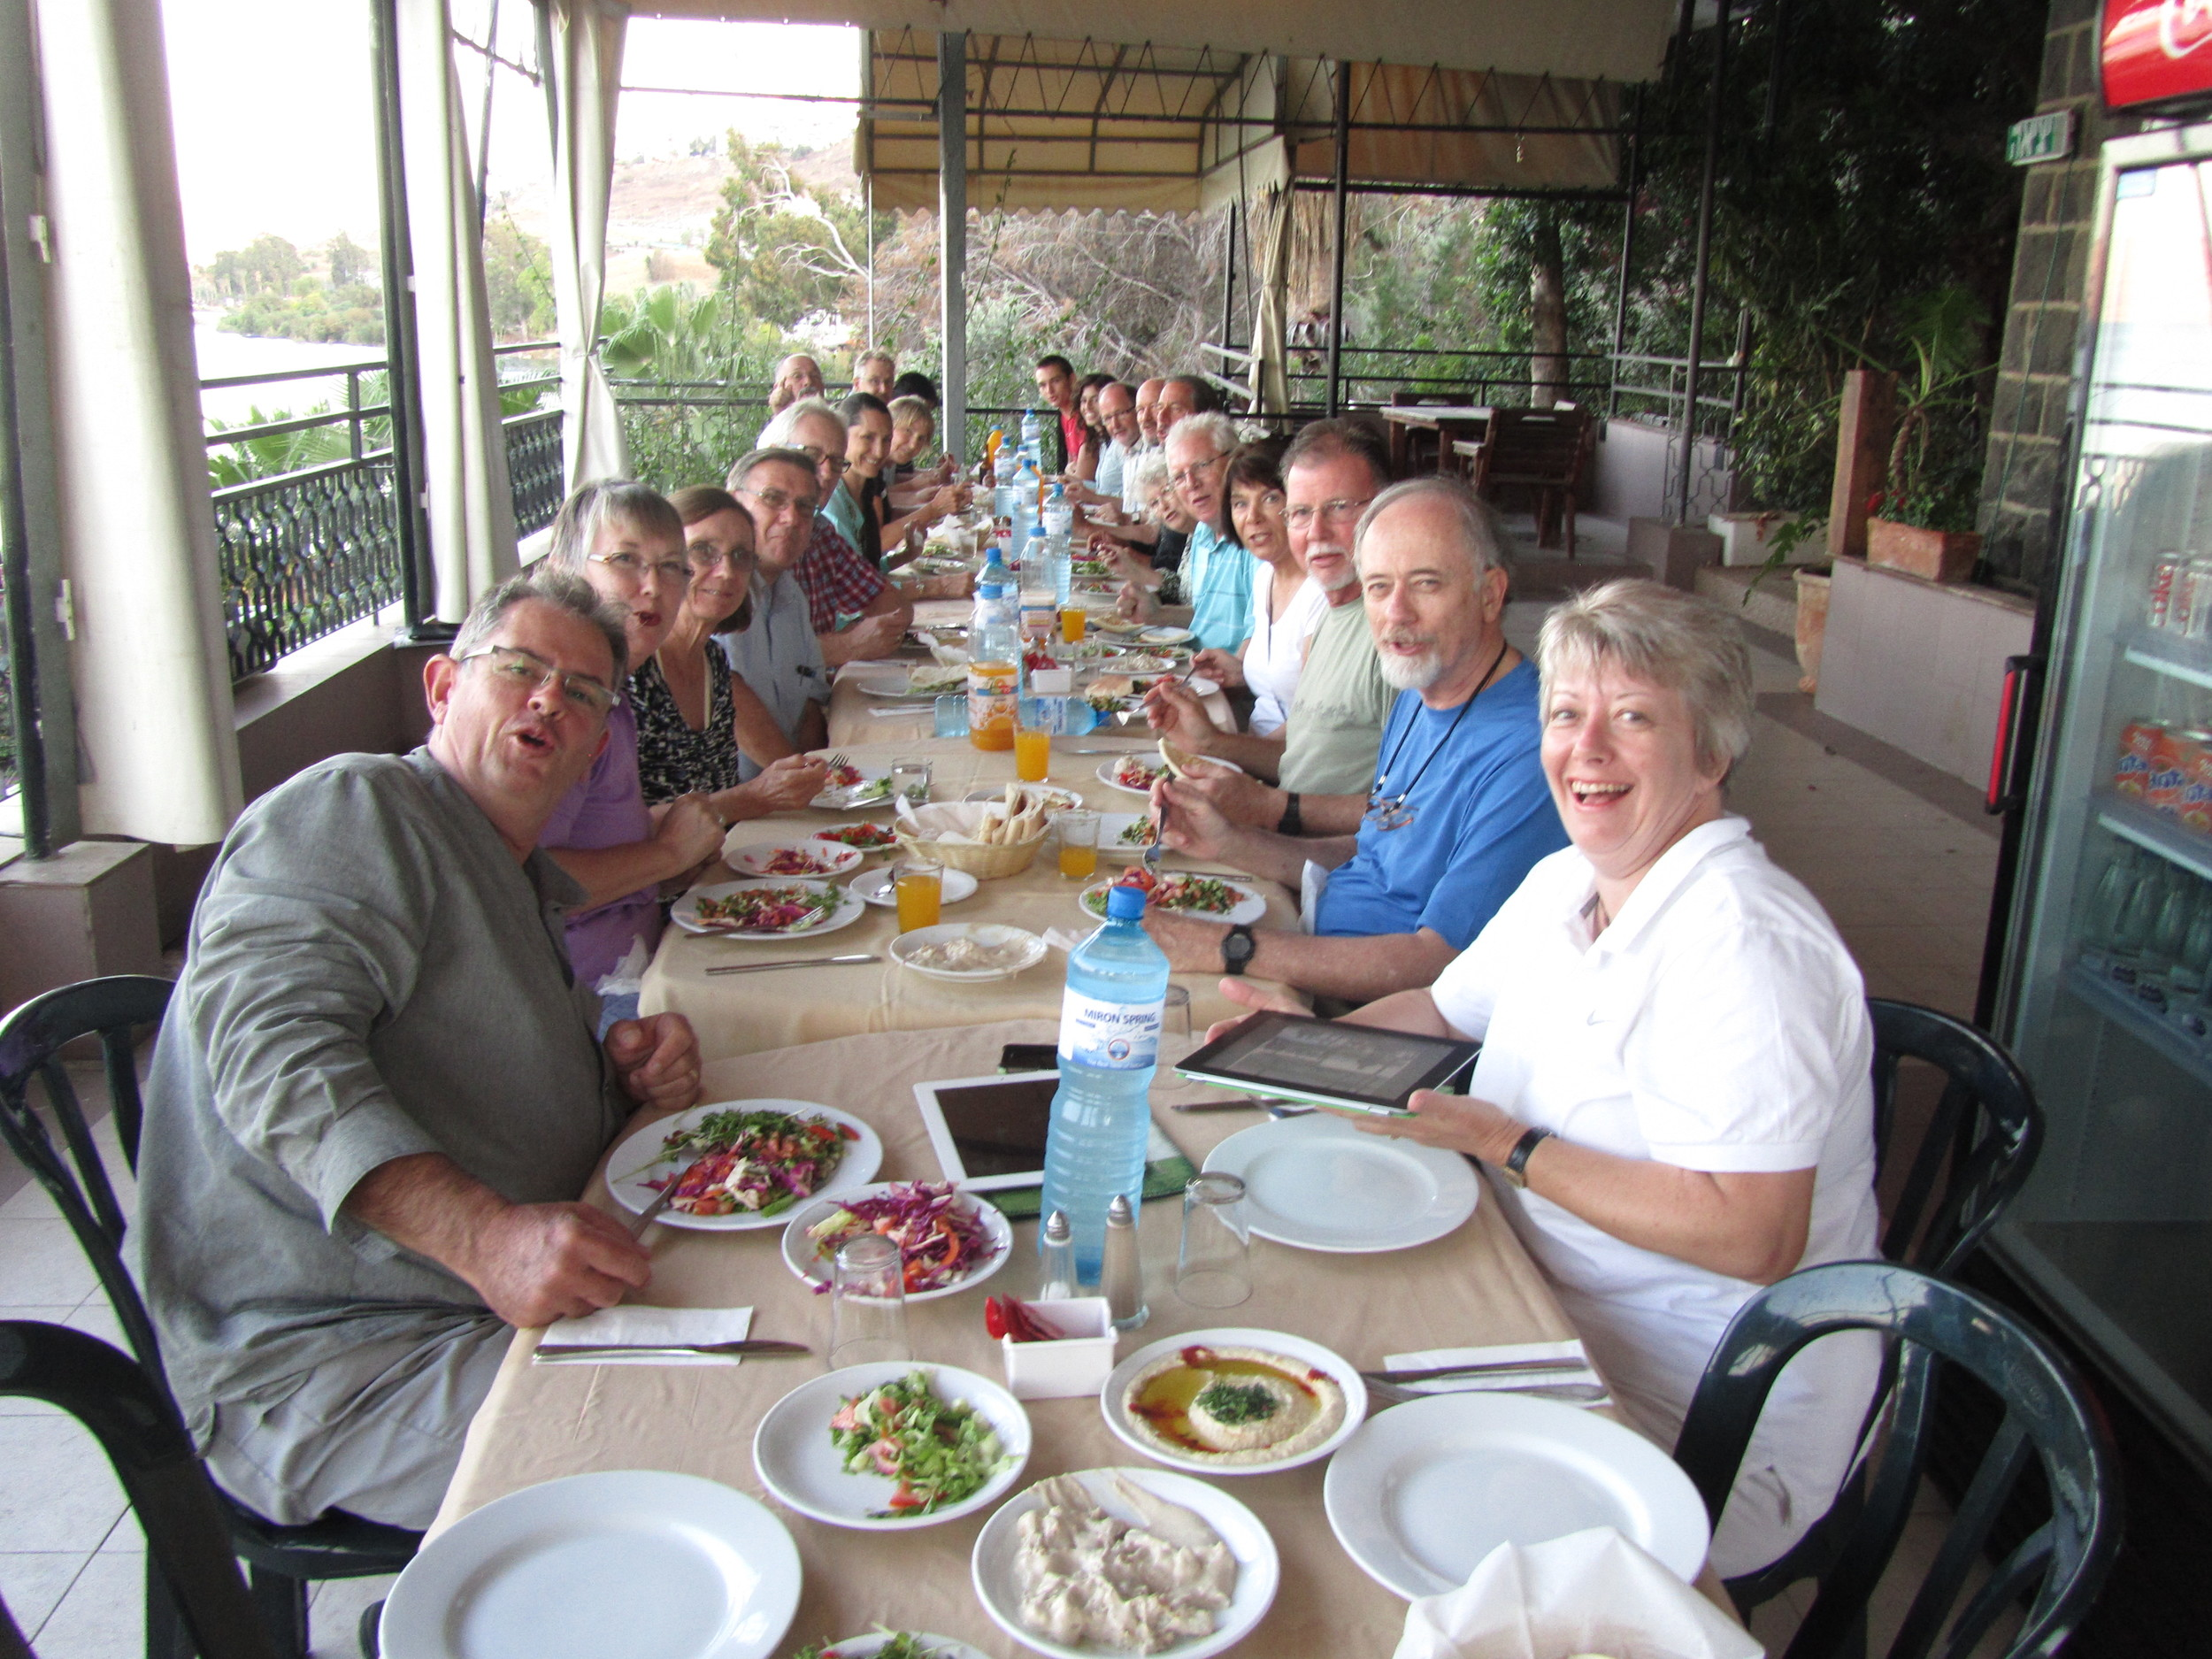 Another great dinner on the veranda of the Peniel Guesthouse overlooking the Sea of Galilee